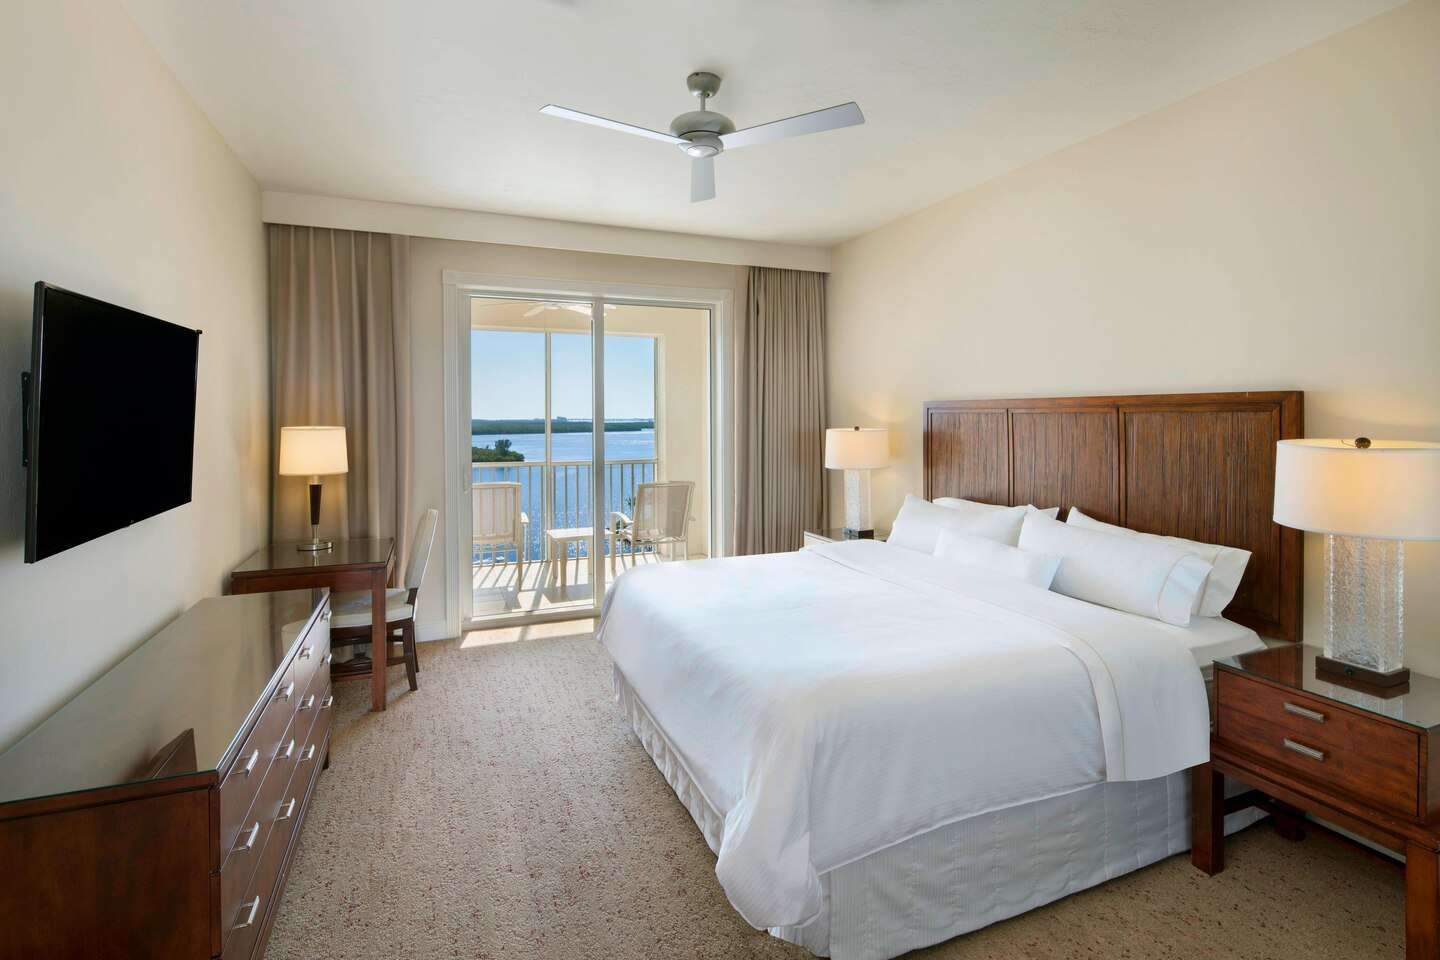 Luxury vacation rentals usa - Florida - Cape coral - The westin cape coral - Deluxe King - Image 1/17